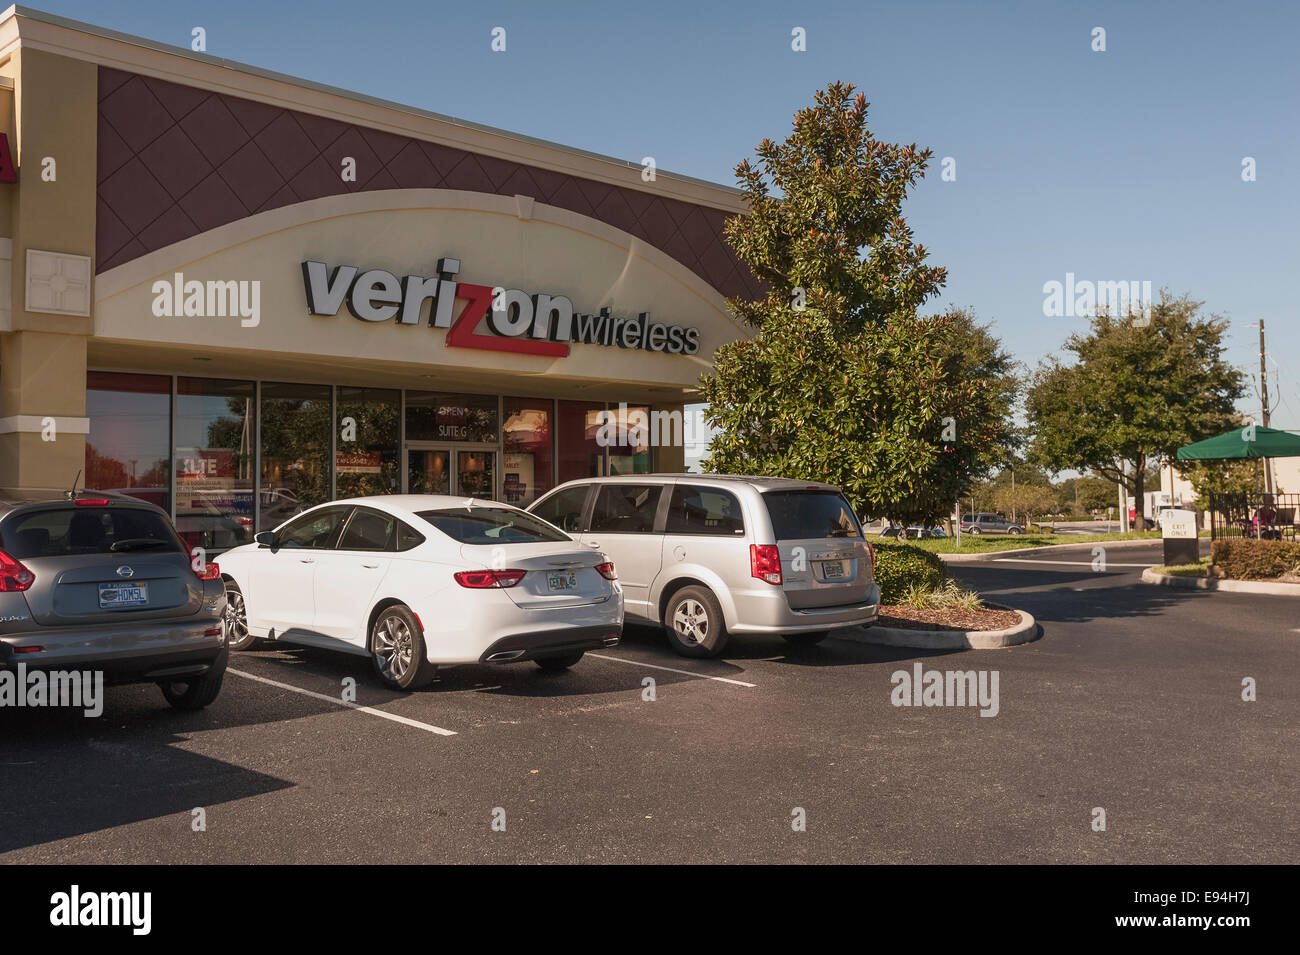 Verizon Wireless Store Located In Lady Lake Florida Usa Stock ...